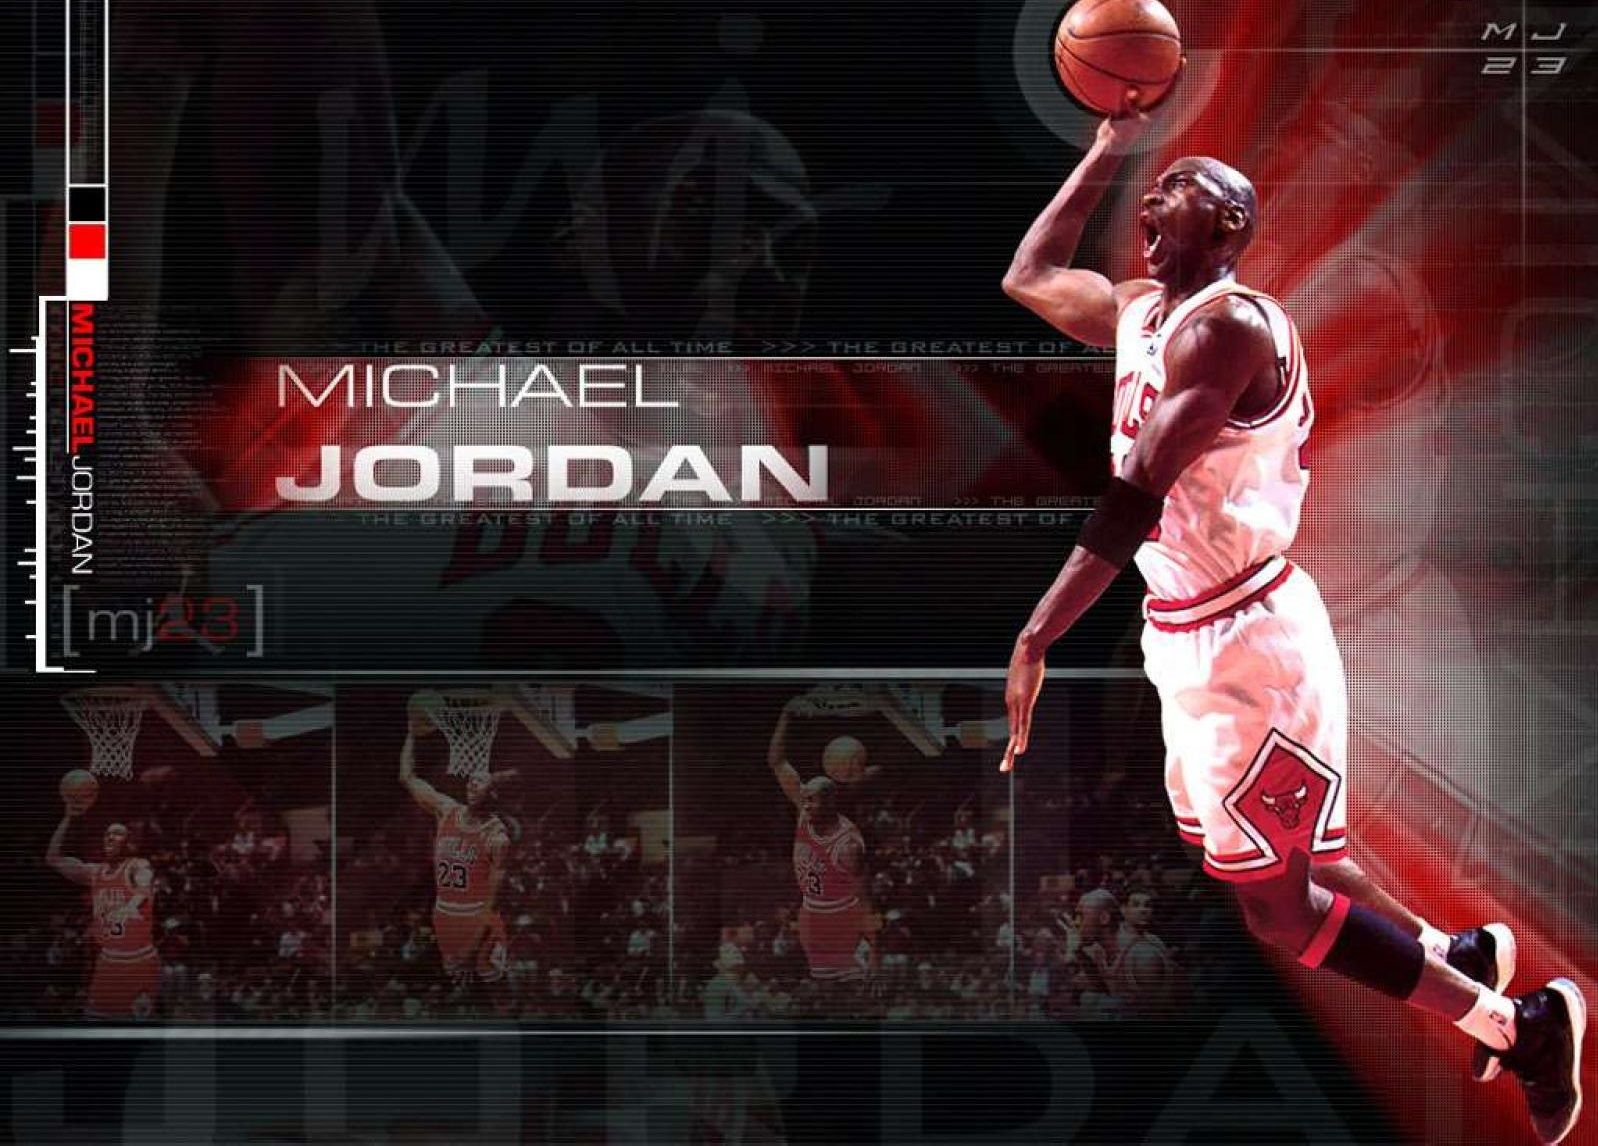 michael jordan hd wallpapers latest hd wallpapers